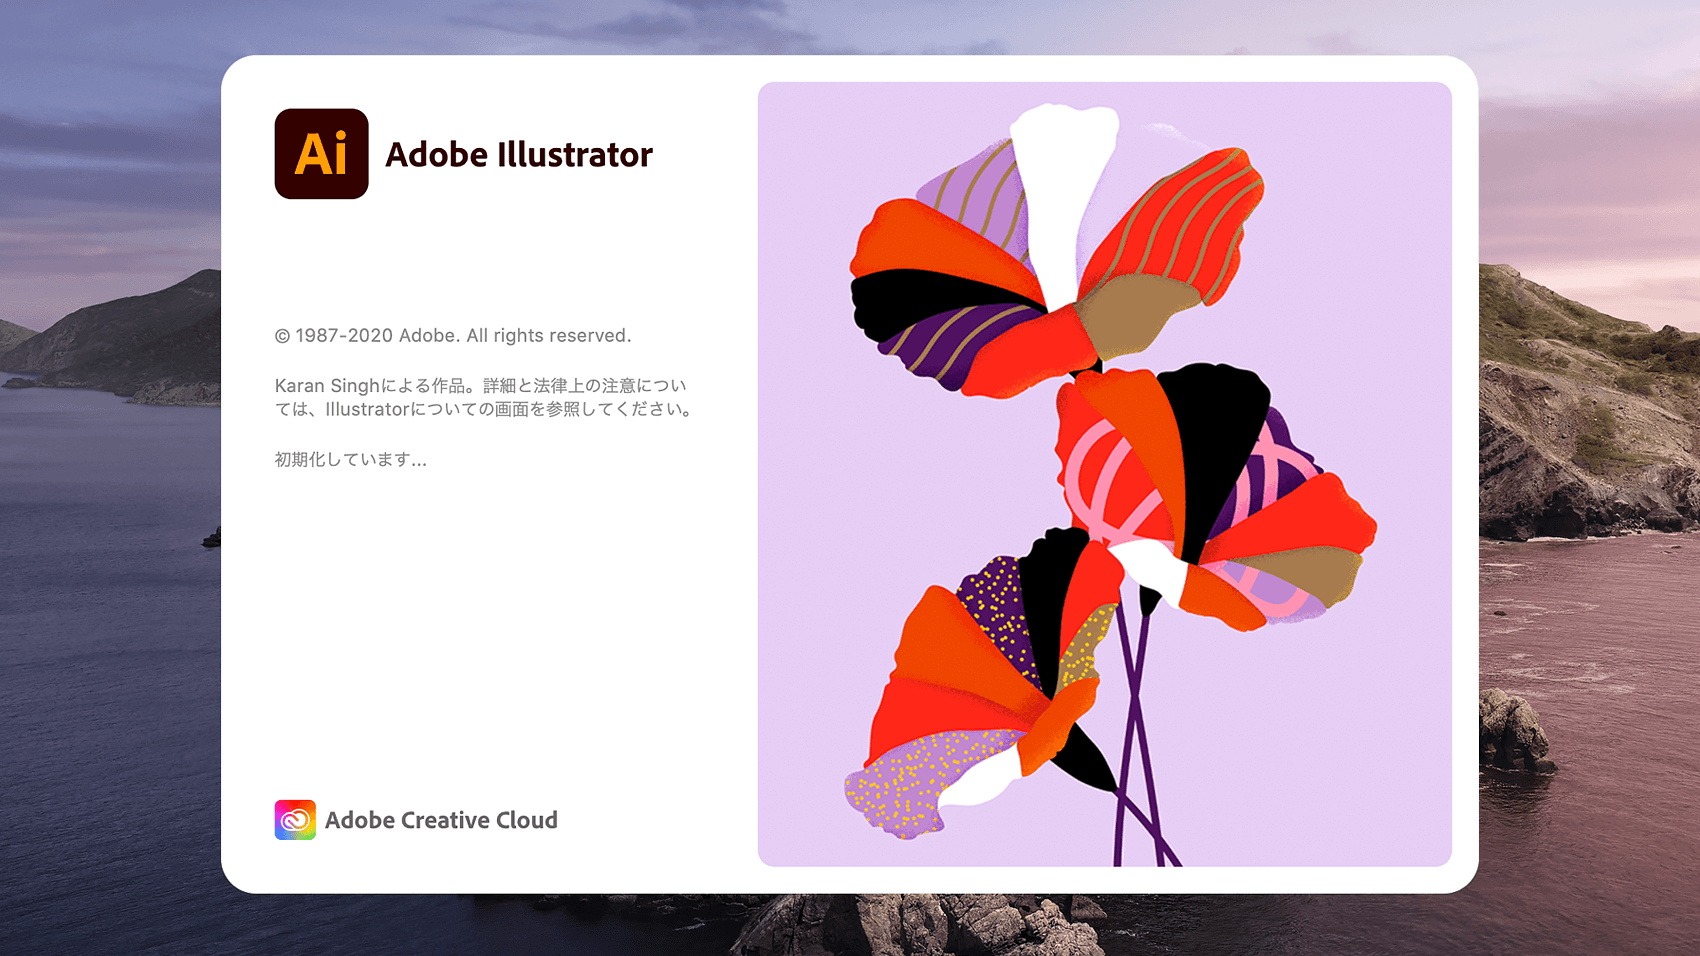 Adobe illustratorのロゴ